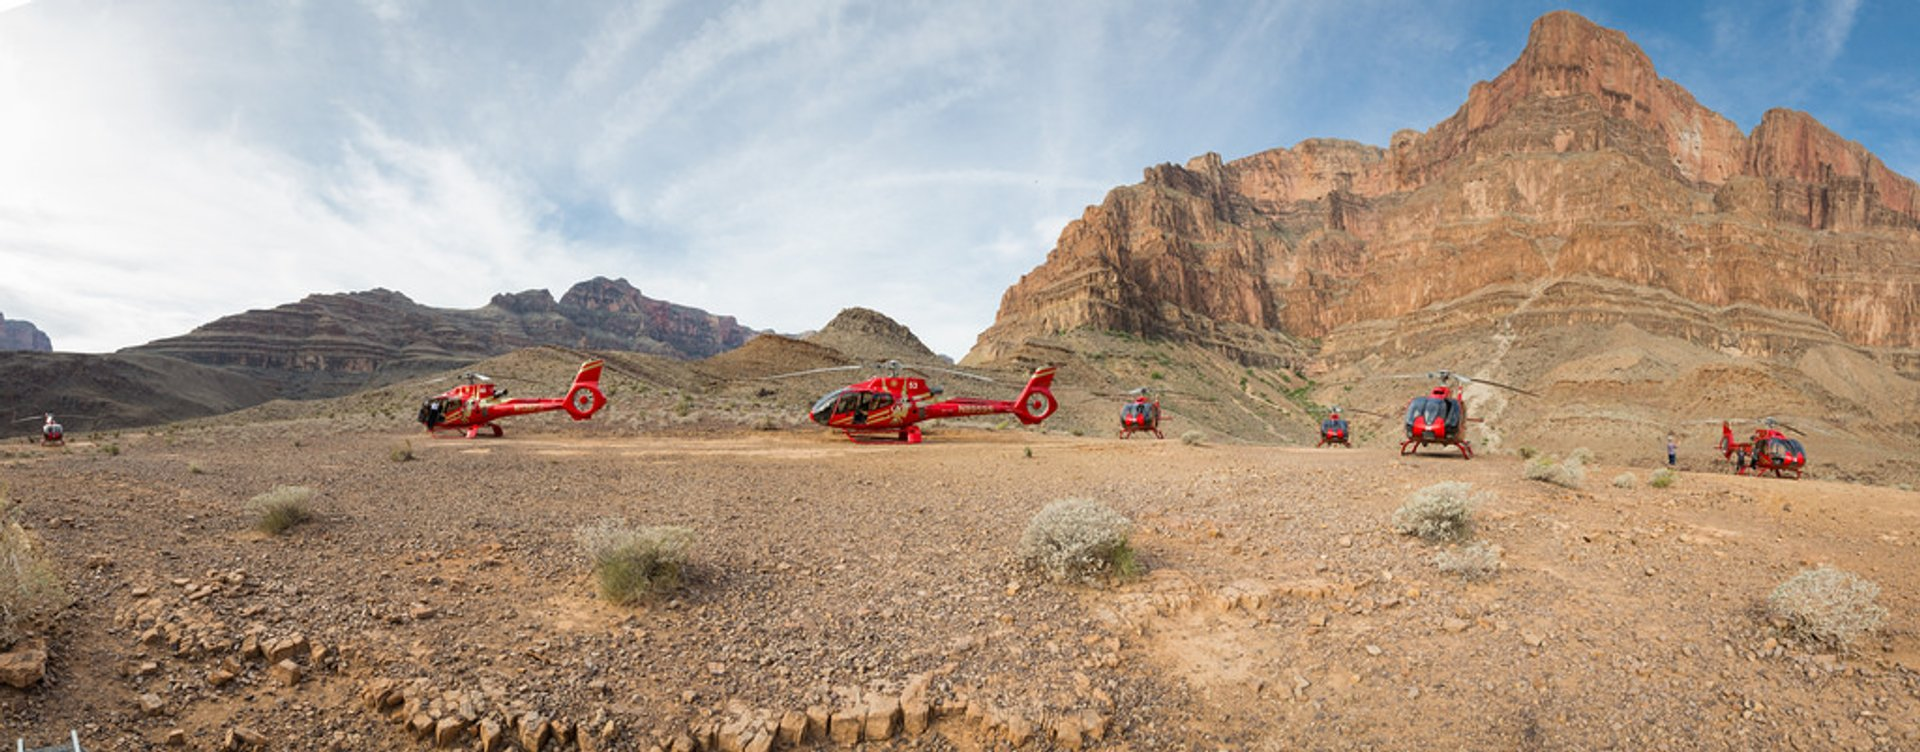 Helicopter Tours in Grand Canyon - Best Season 2020